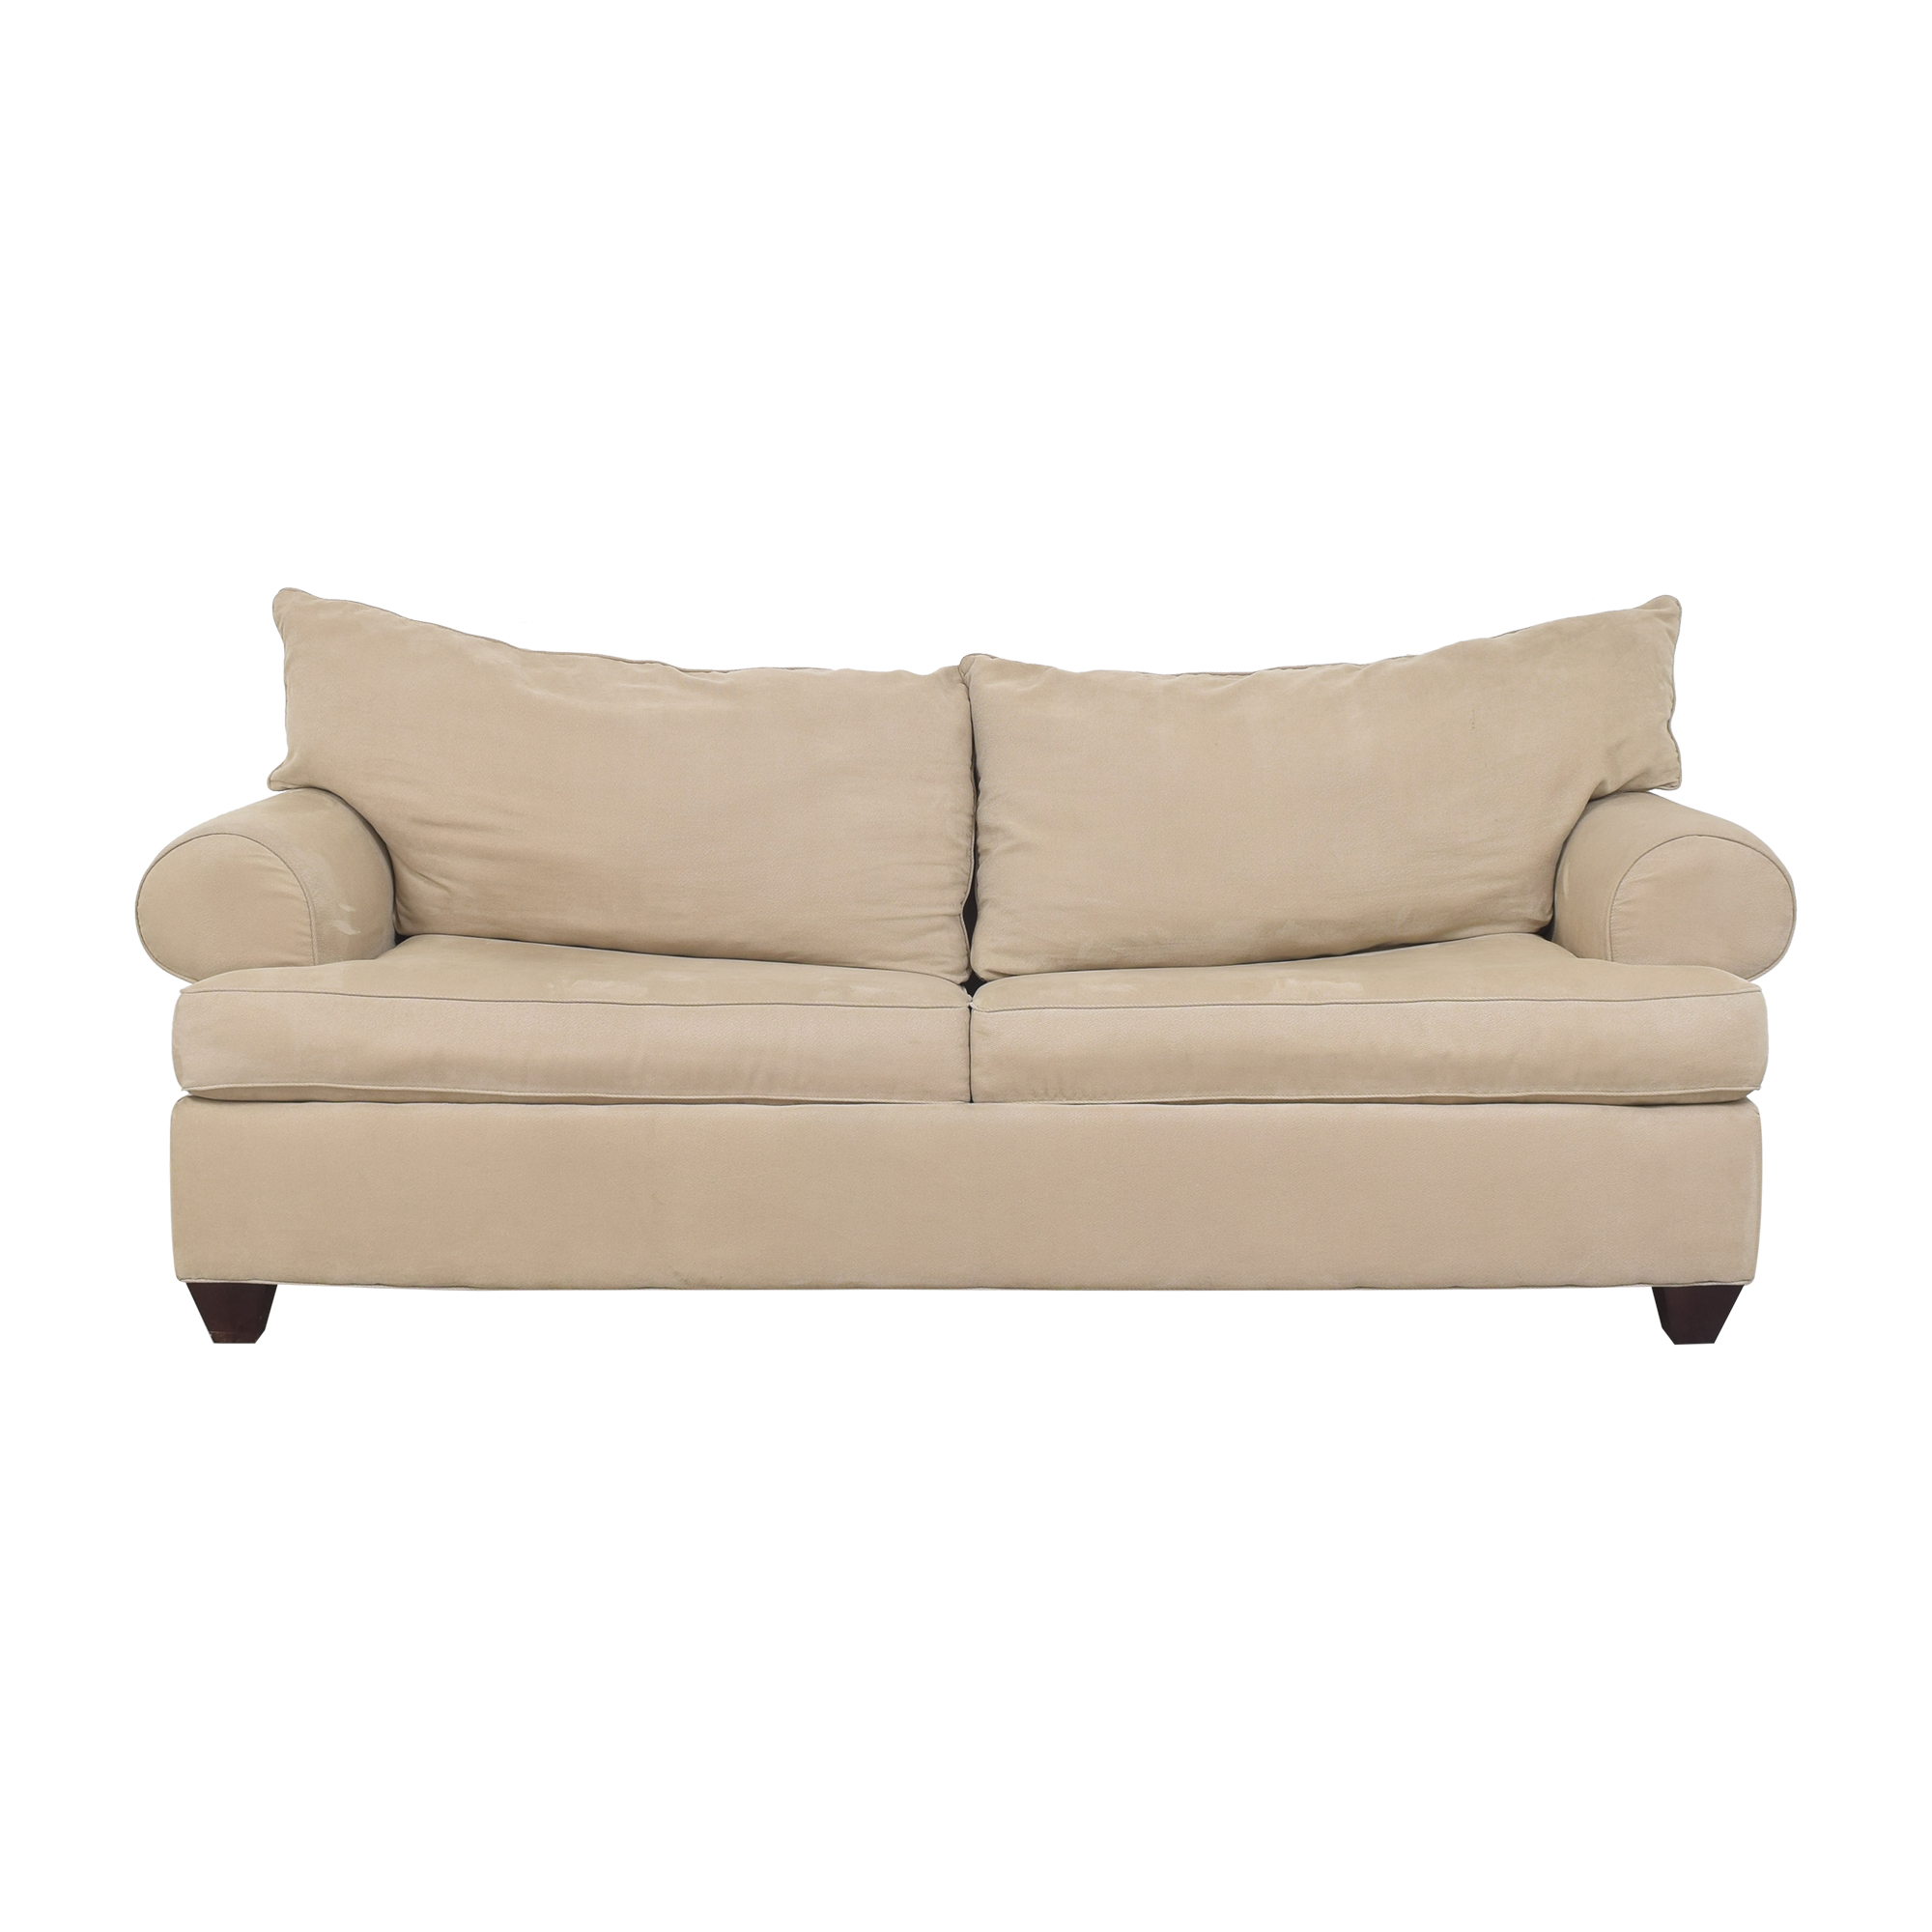 Raymour & Flanigan Two Cushion Sleeper Sofa sale